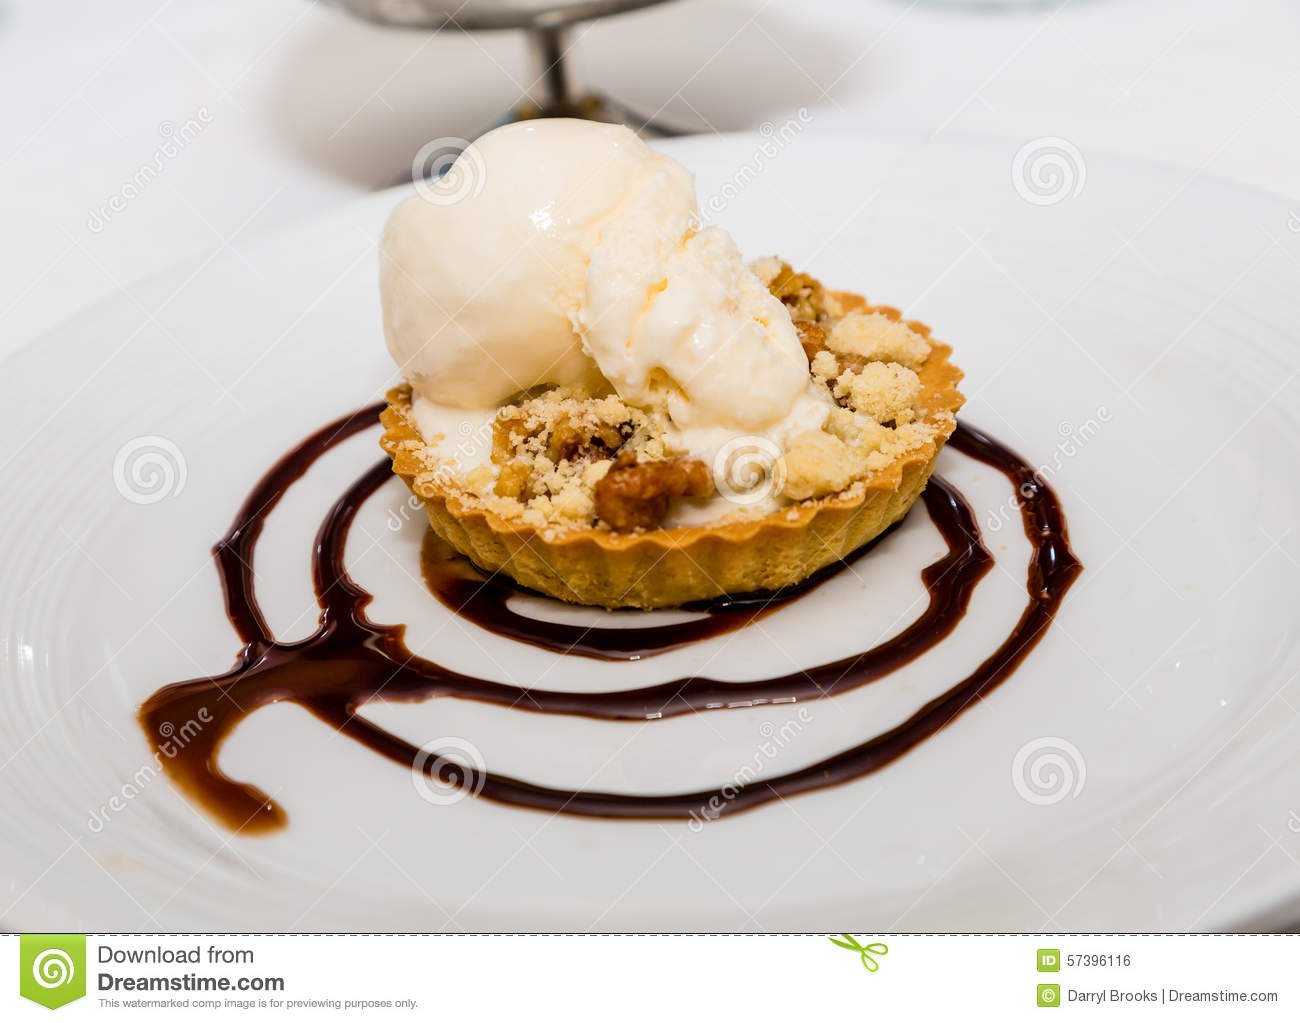 Apple Tart With Vanilla Ice Cream And Chocolate Sauce Stock Photo ...